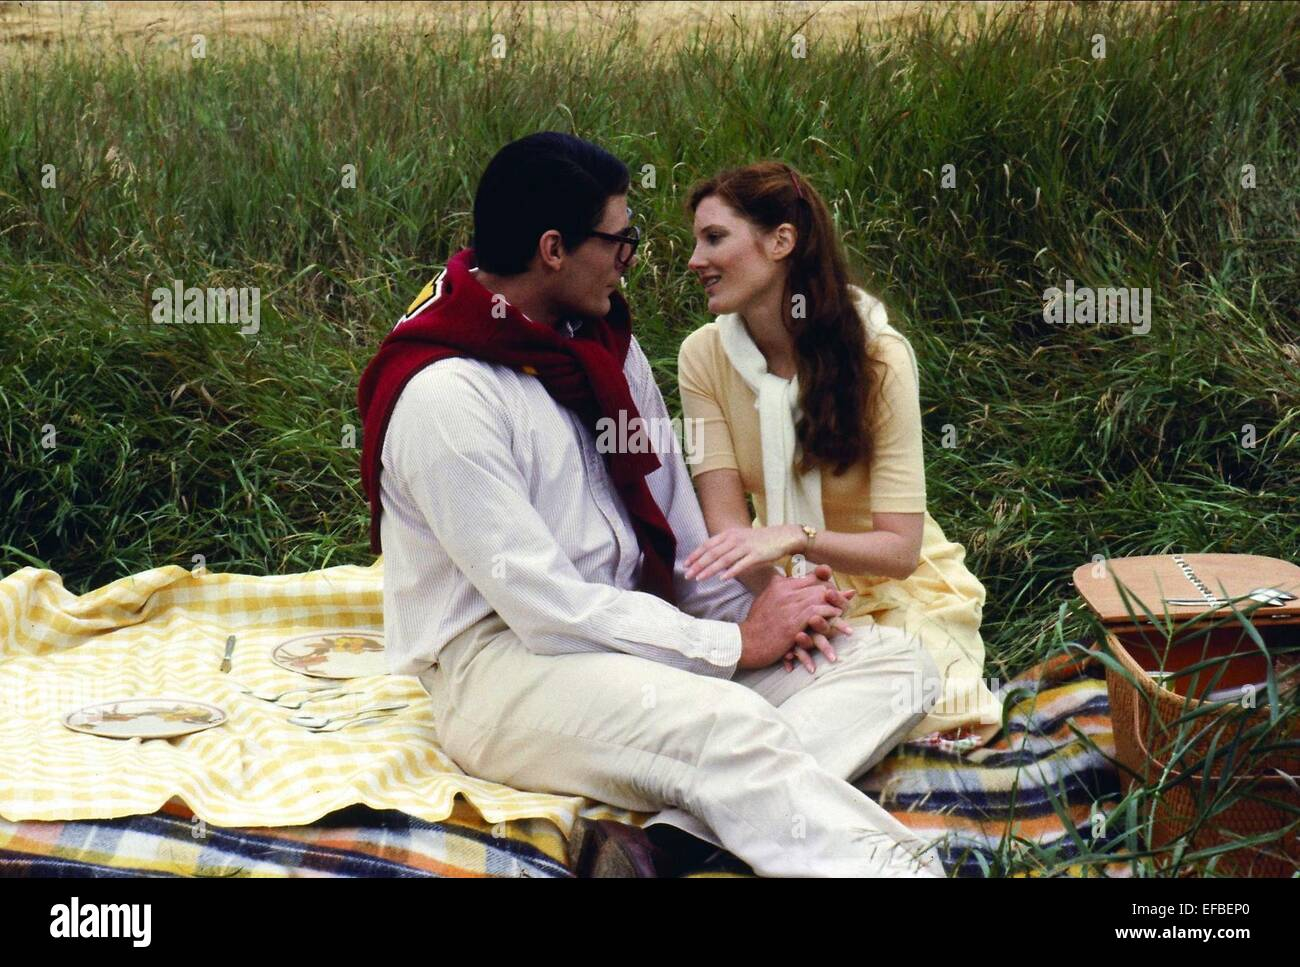 CHRISTOPHER REEVE, ANNETTE O'TOOLE, SUPERMAN III, 1983 Stock Photo